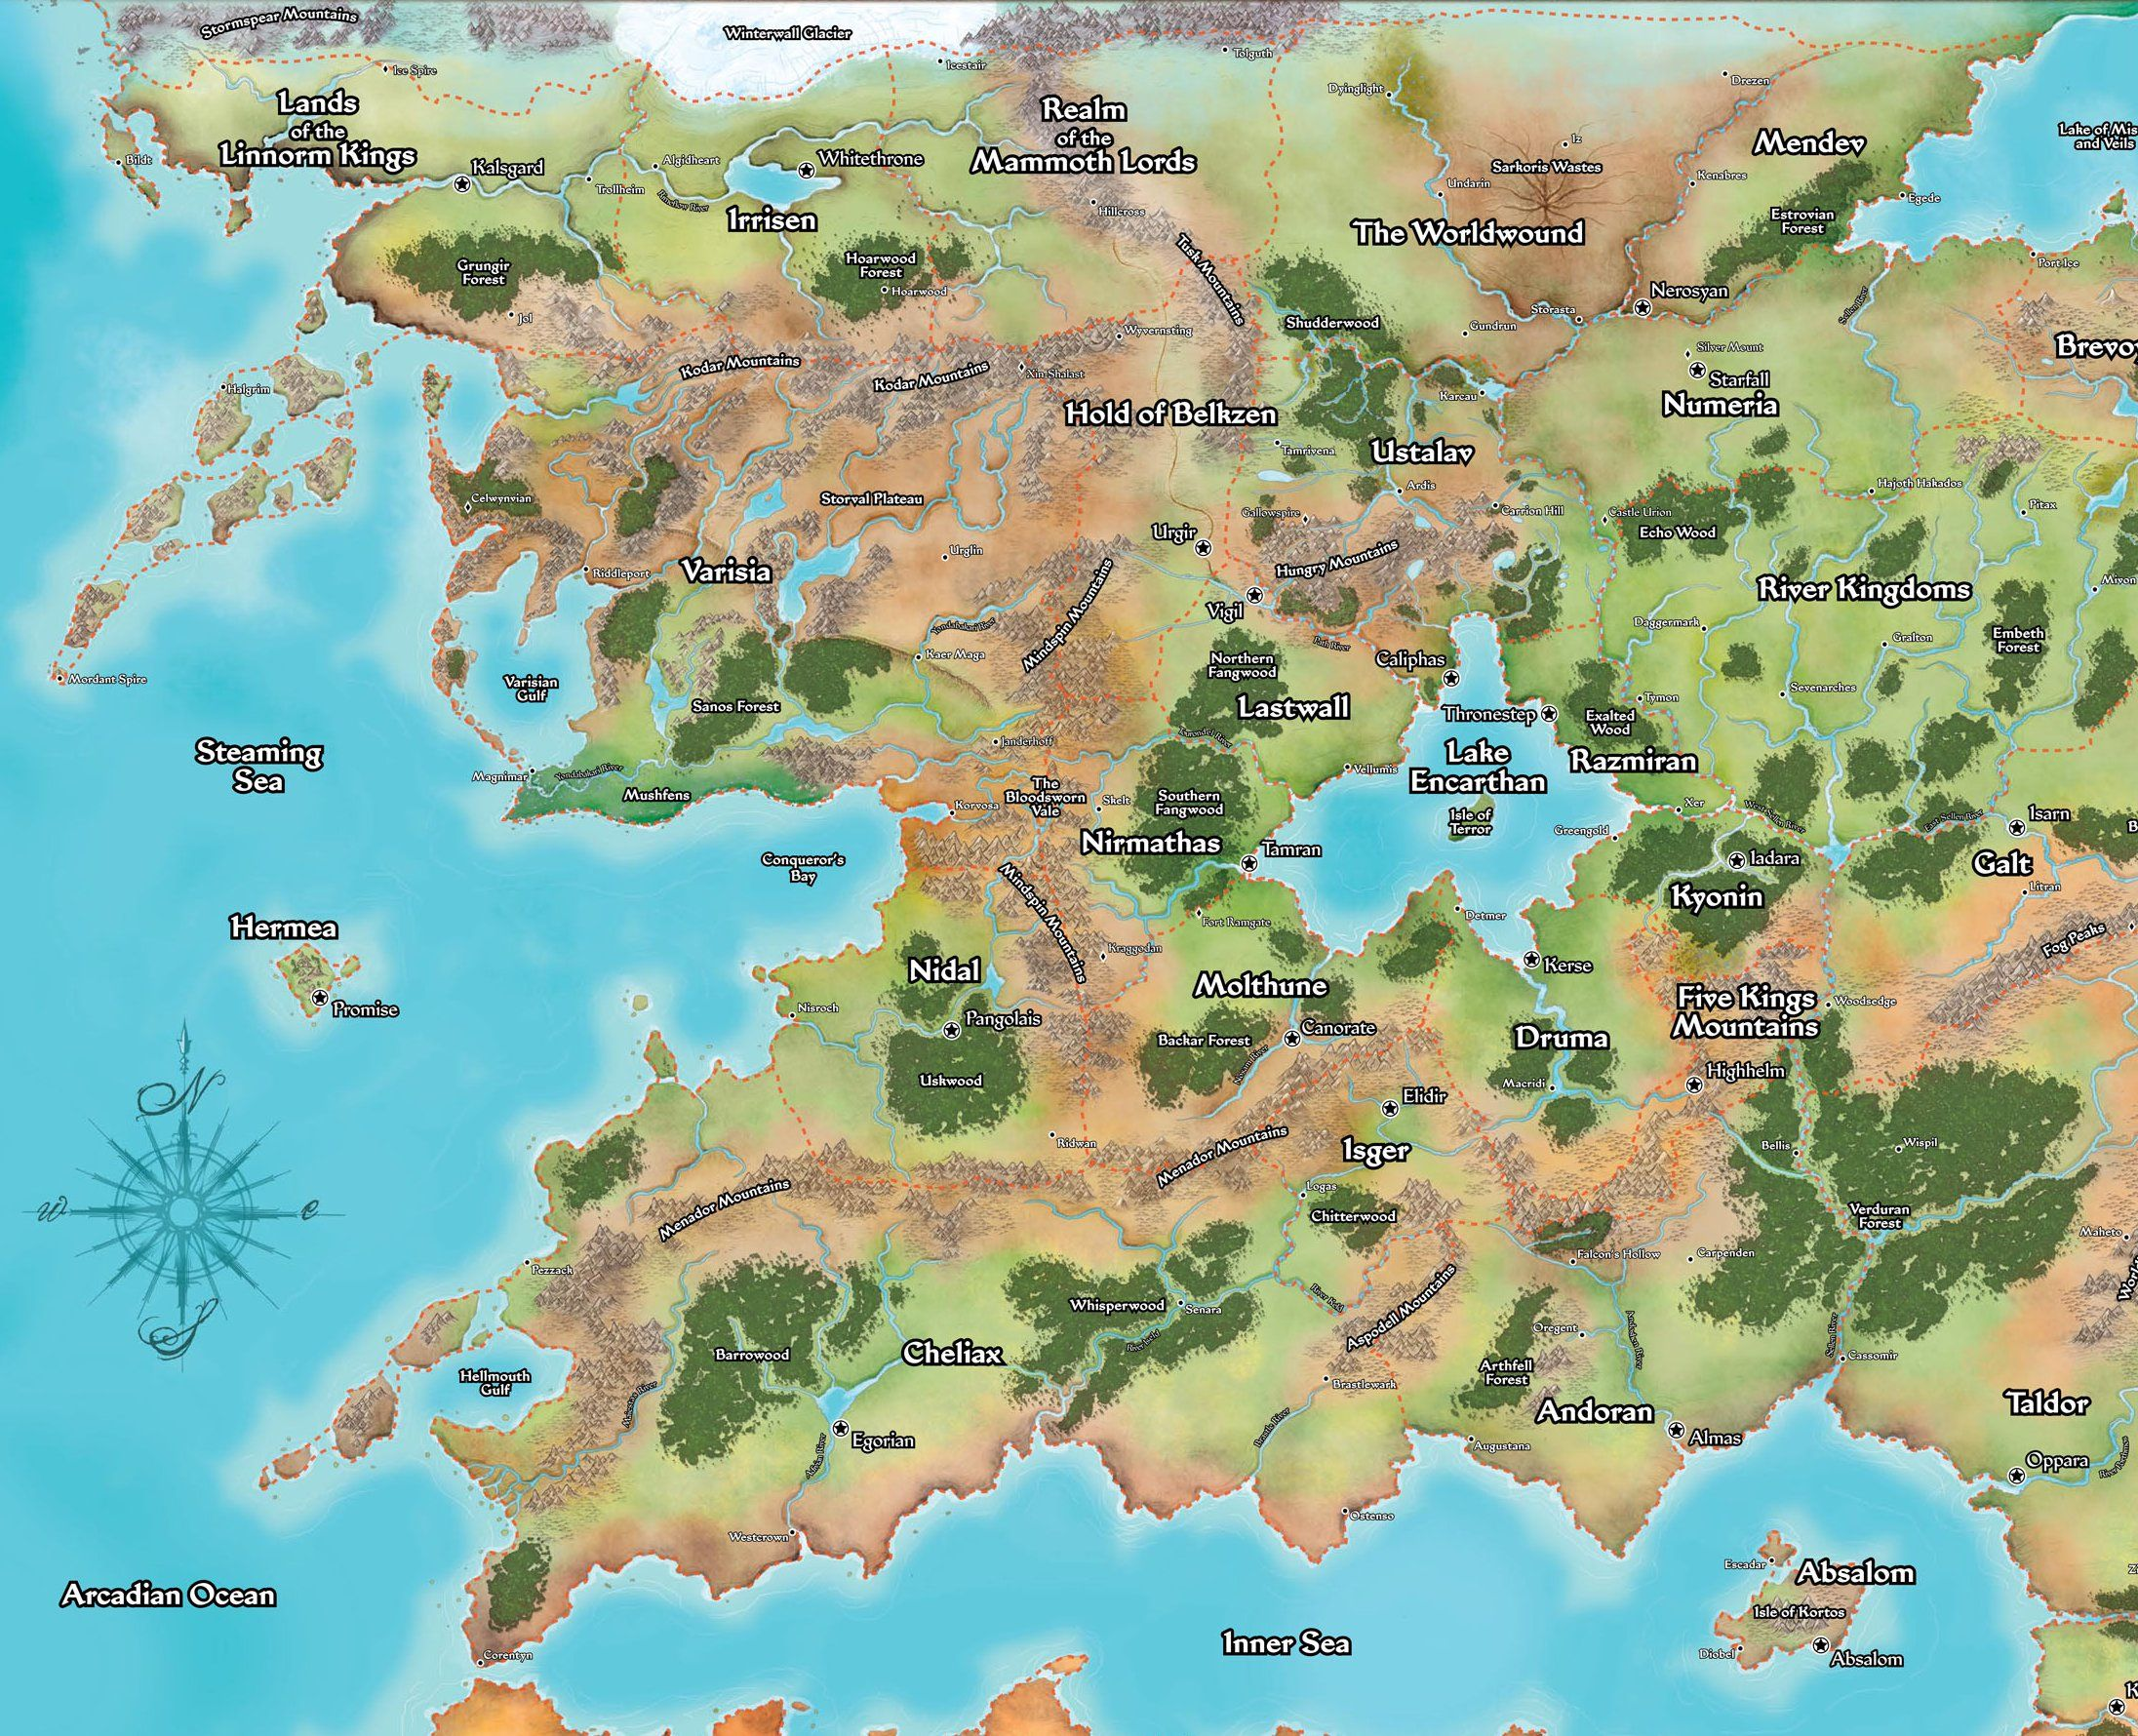 Pathfinder Golarion Map Pin by Steven Austin on Medieval Terrain Maps in 2019 | Map  Pathfinder Golarion Map